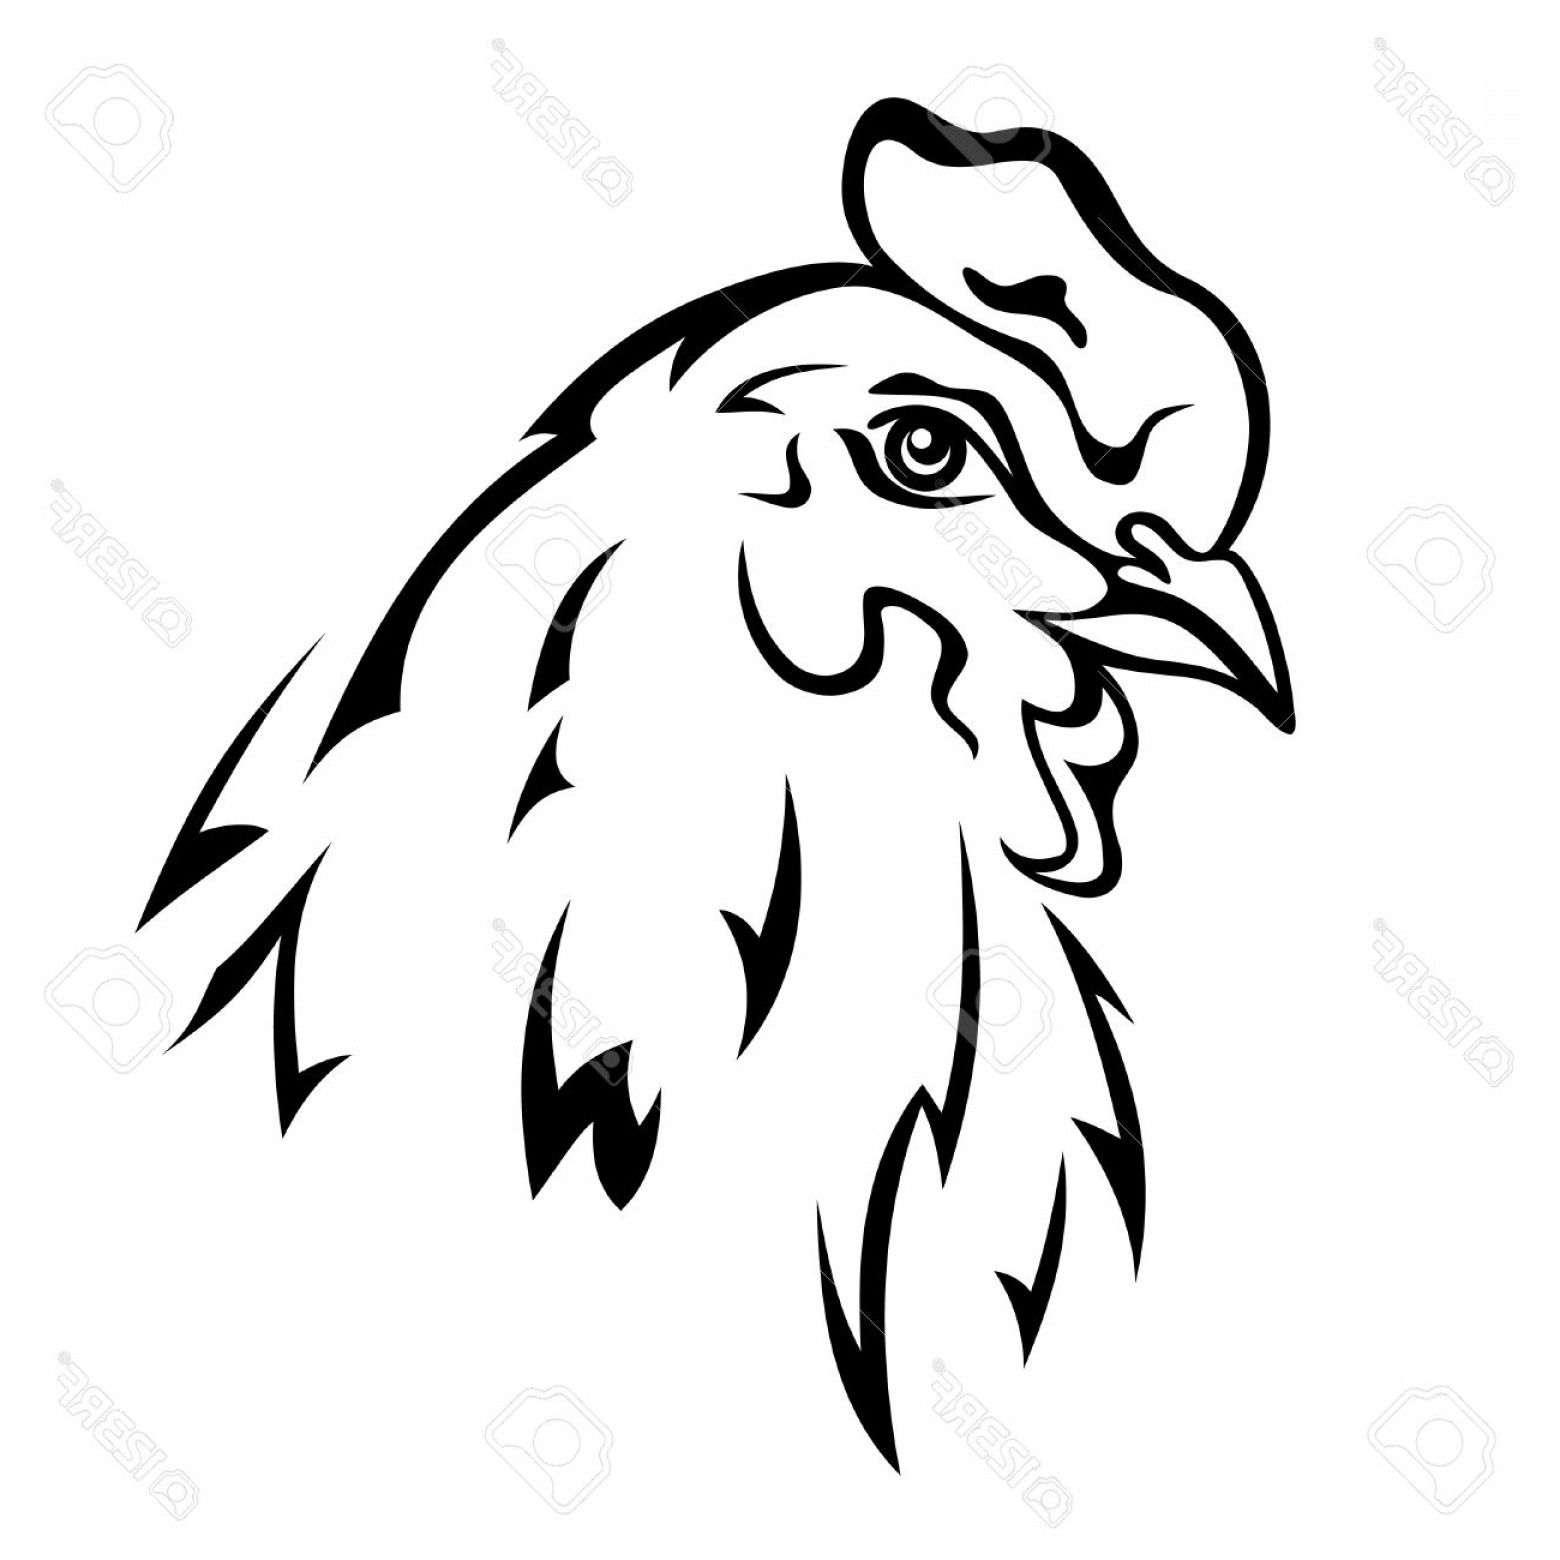 Chicken Vector Black: Photochicken Head Vector Illustration Black And White Outline